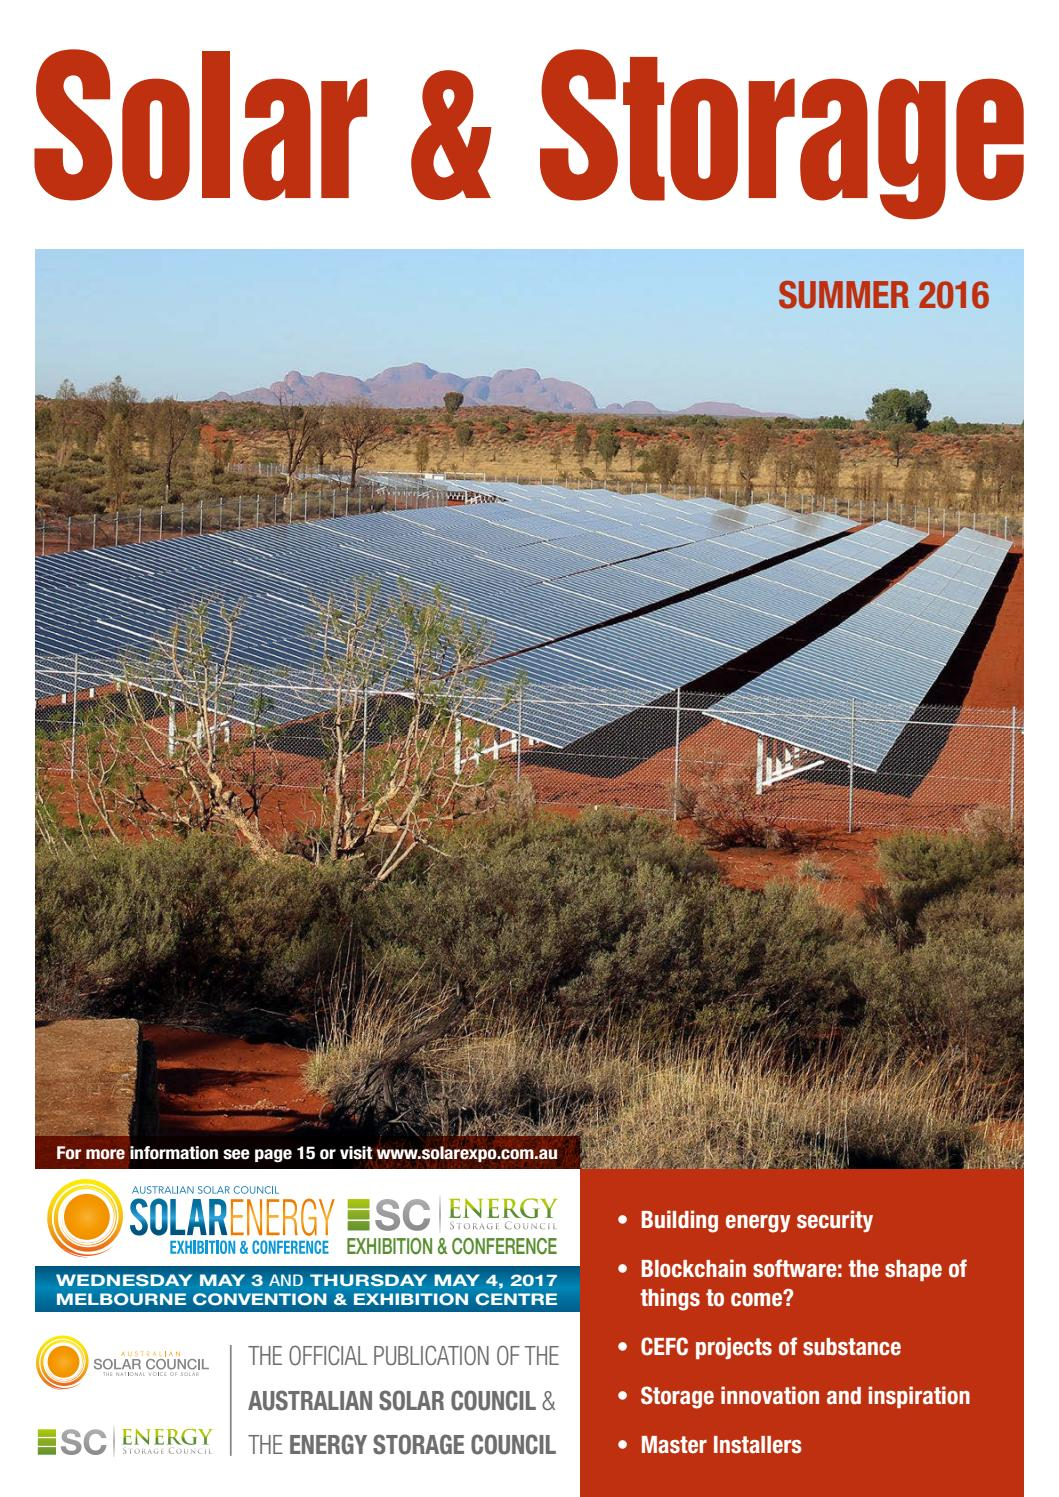 Solar Storage Magazine Summer 2016 By Smart Energy Council Issuu 28 2010 A Compact And Portable 12v Power Inverter Circuit That